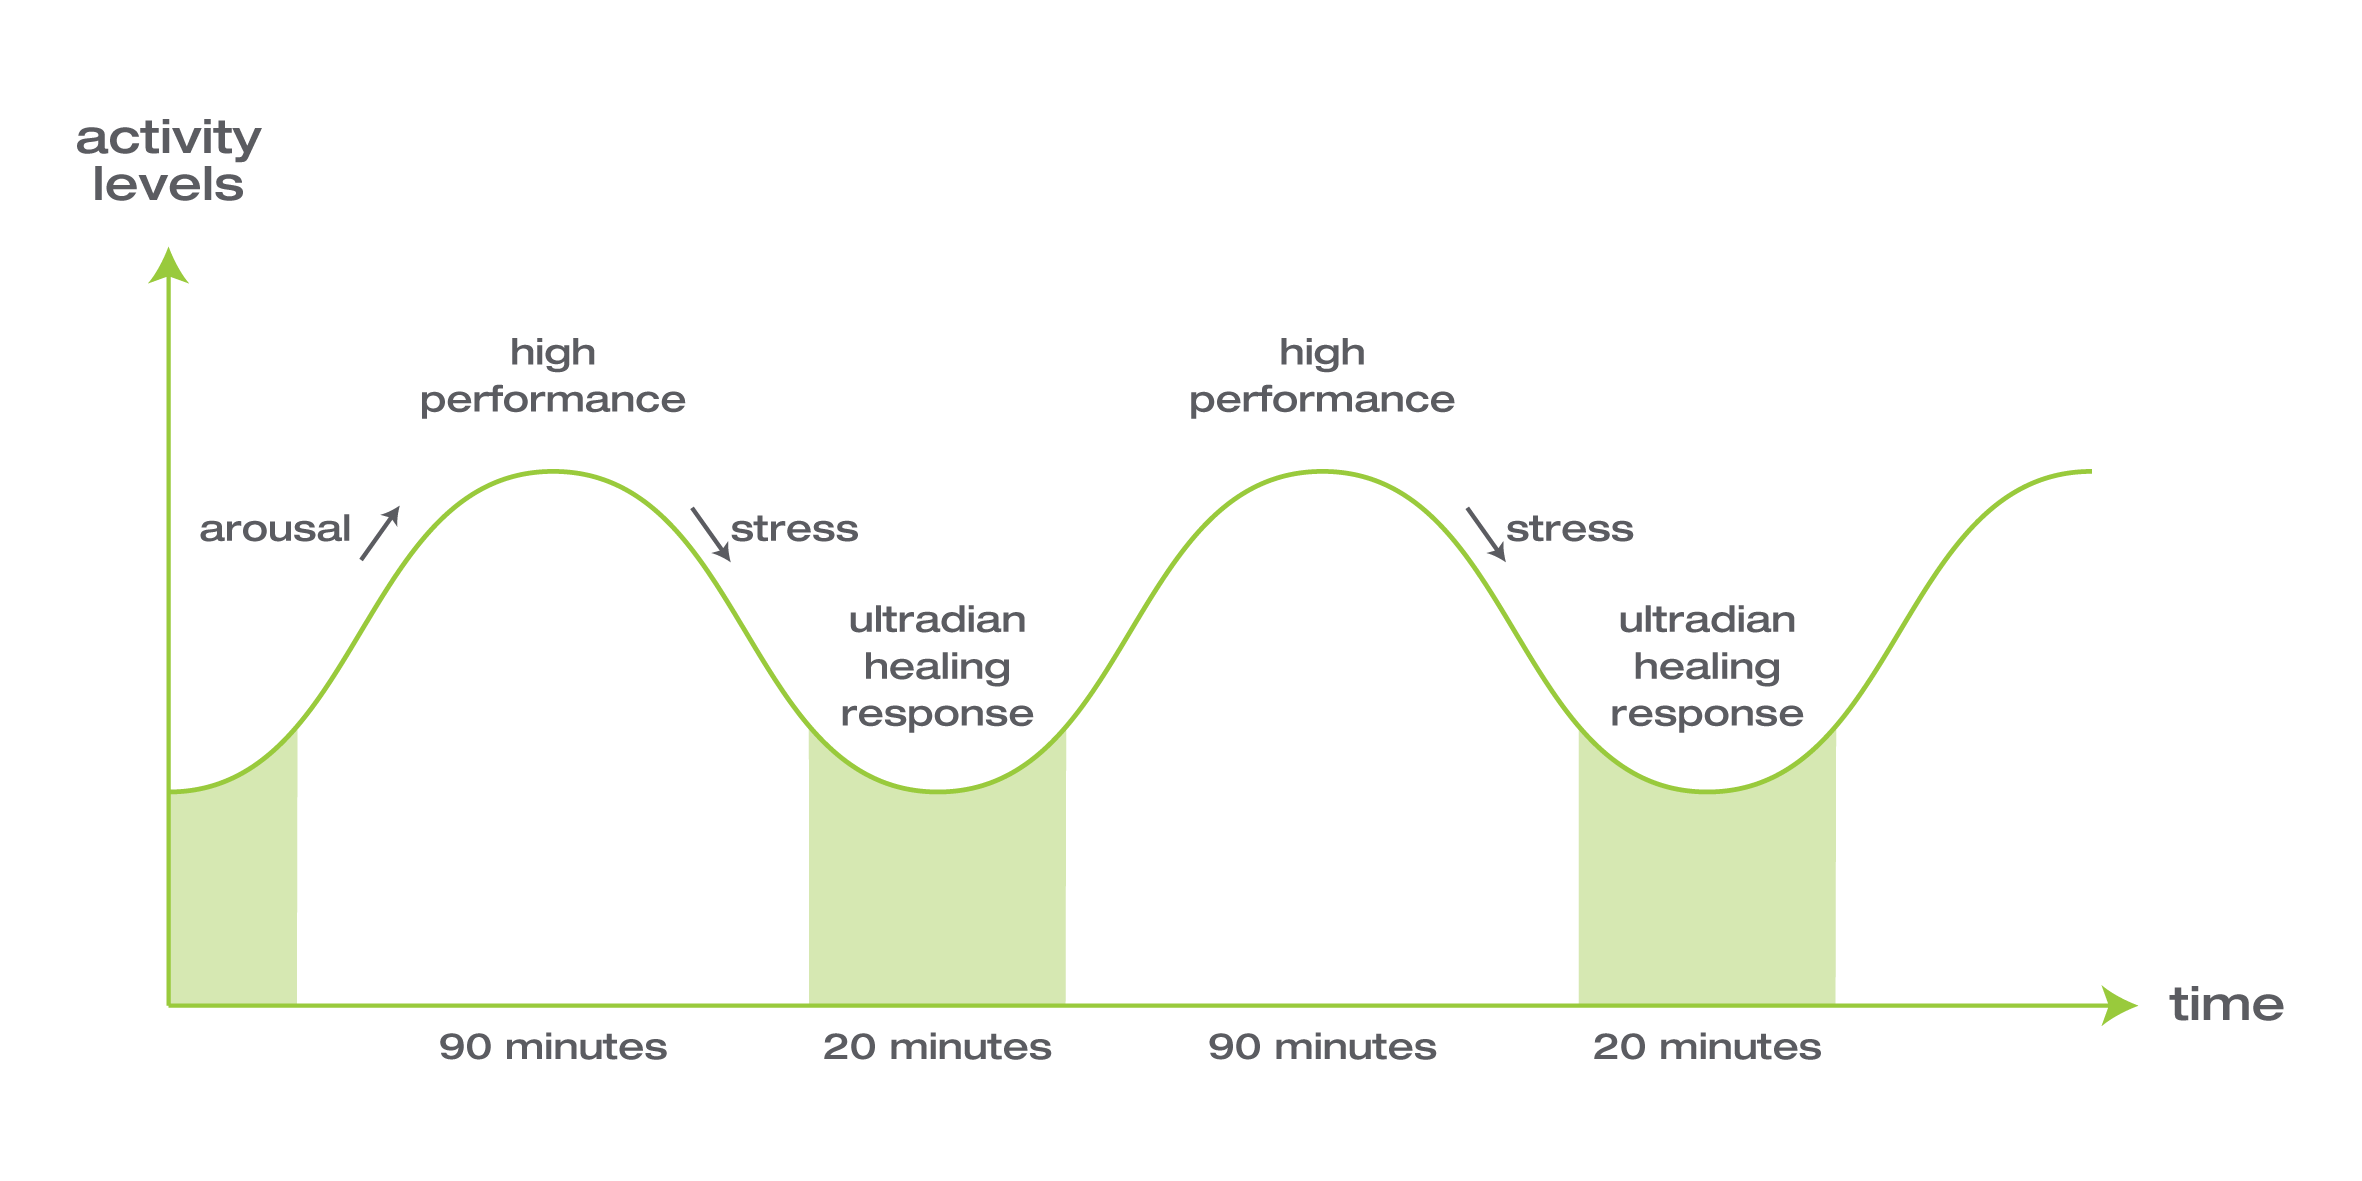 ultradian performance rhythm